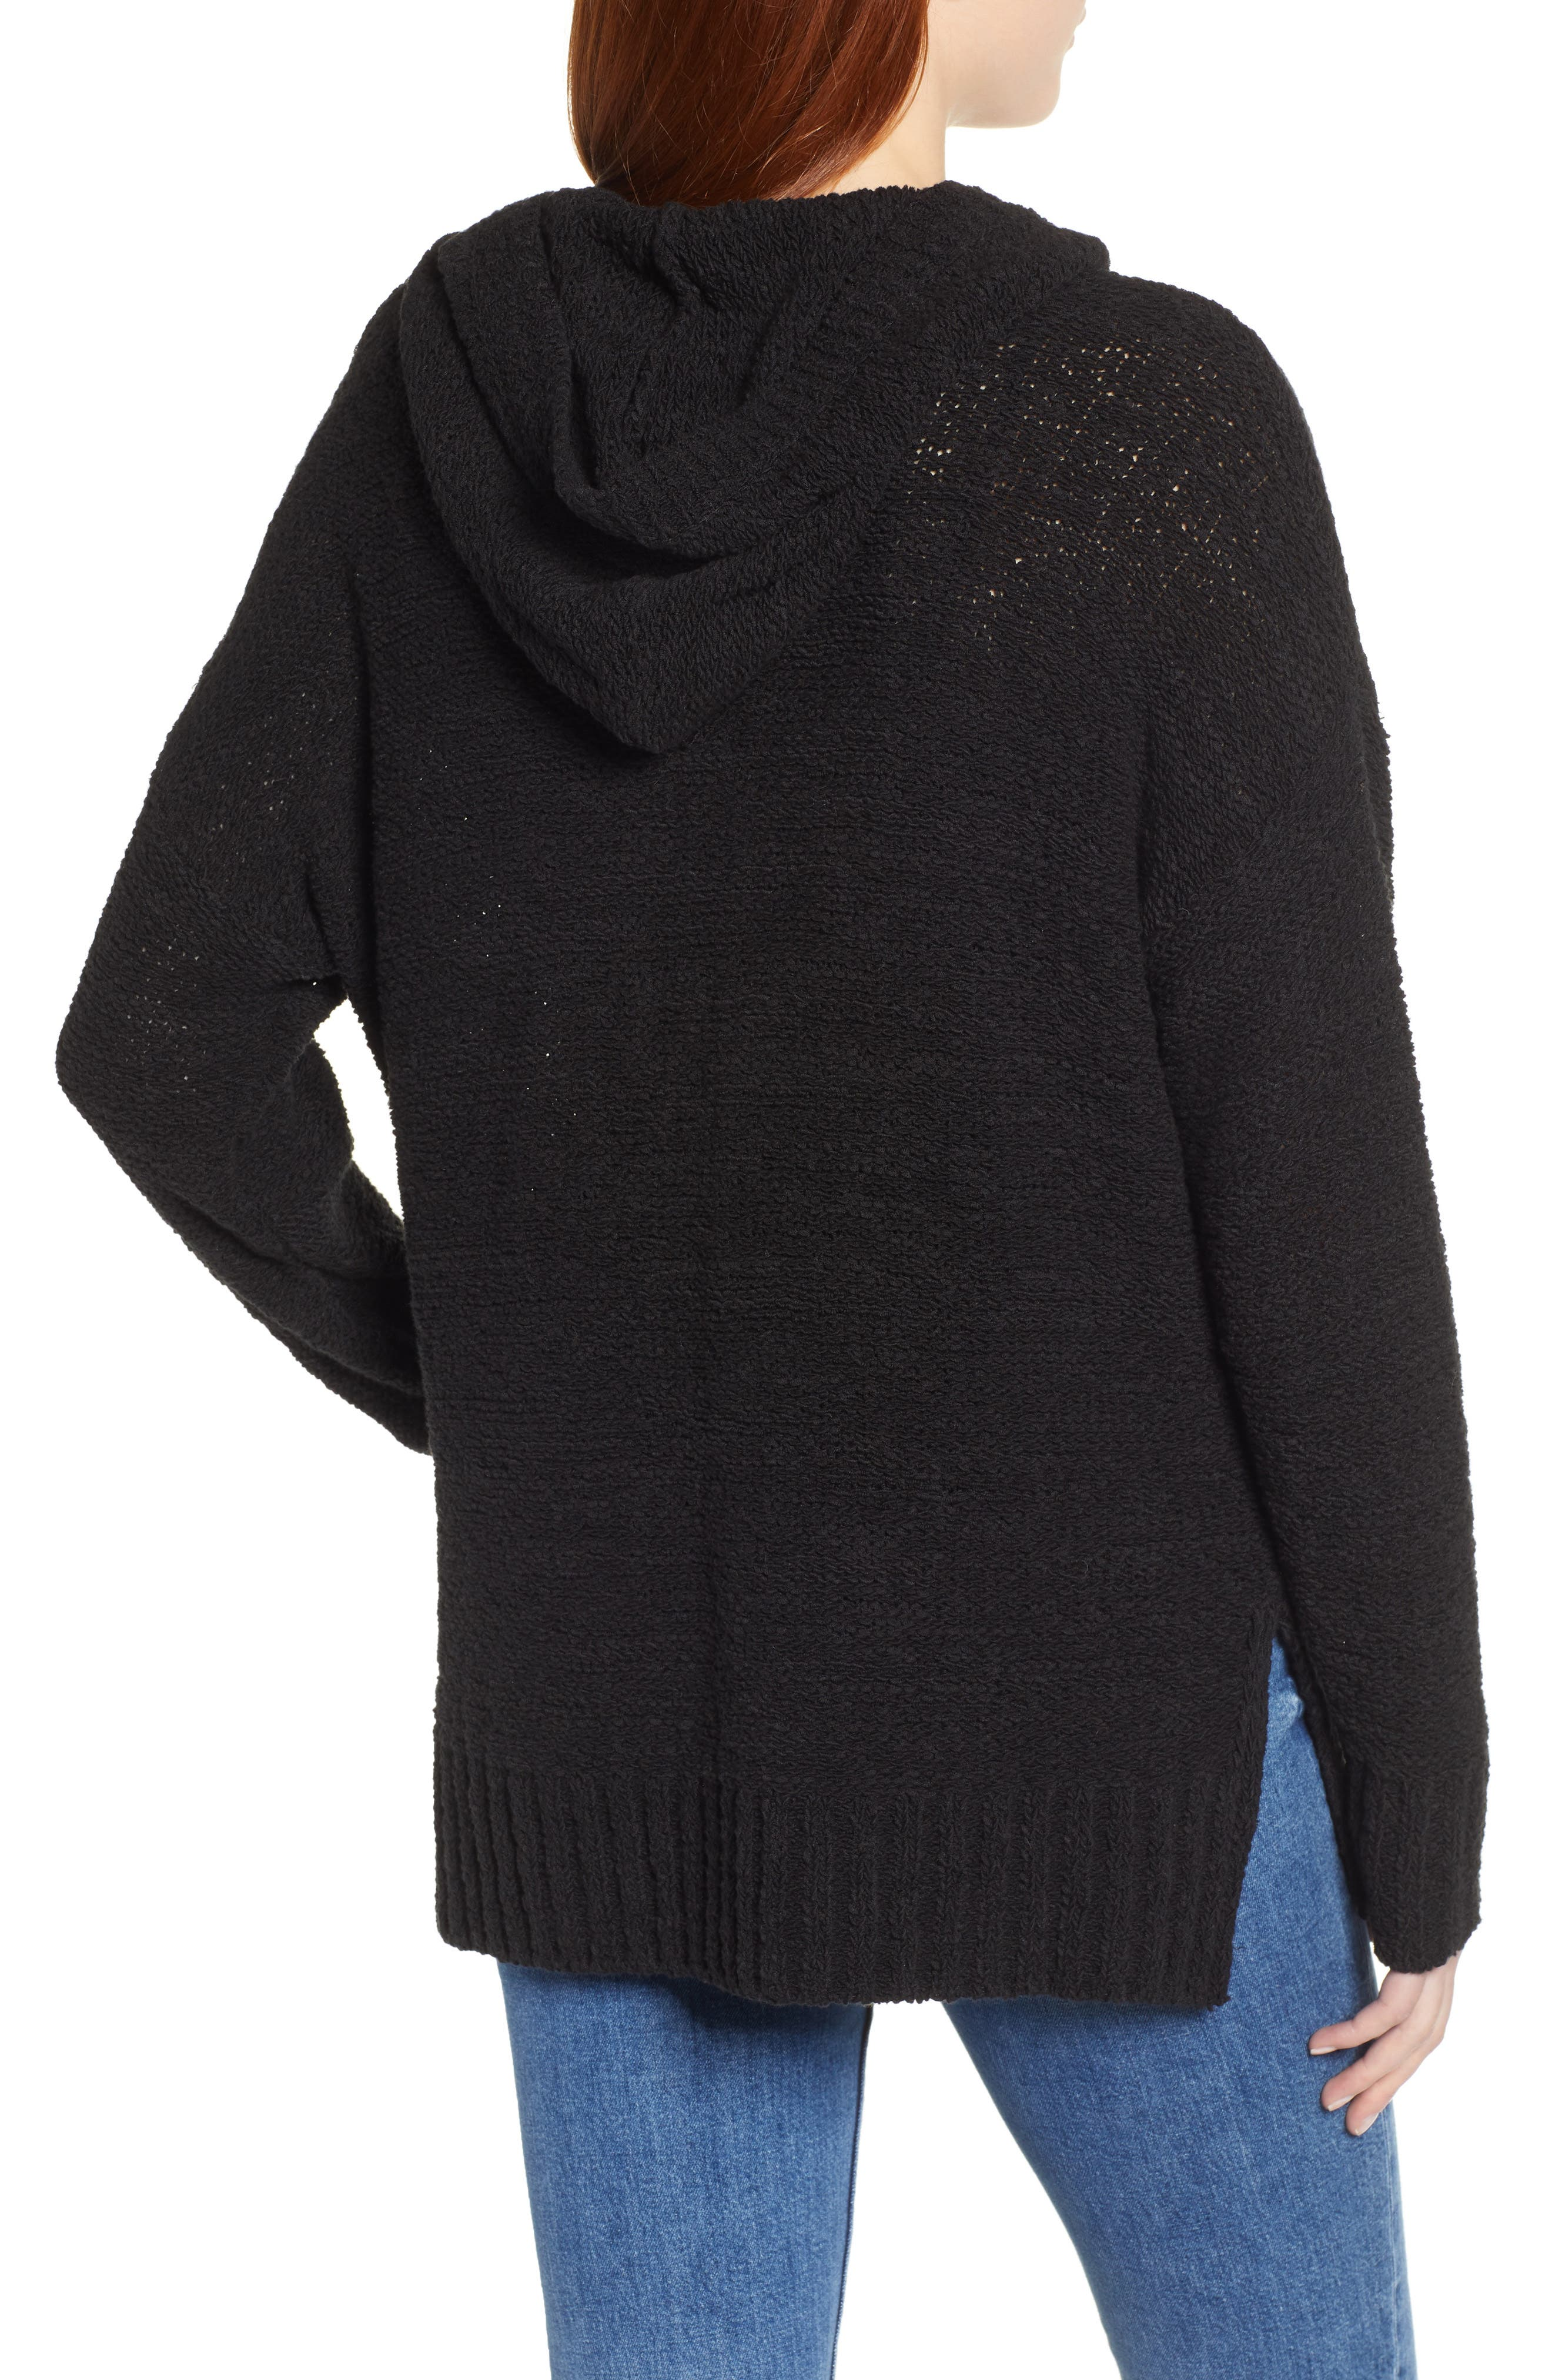 CASLON<SUP>®</SUP>, Beachy Hooded Knit Sweater, Alternate thumbnail 2, color, 001